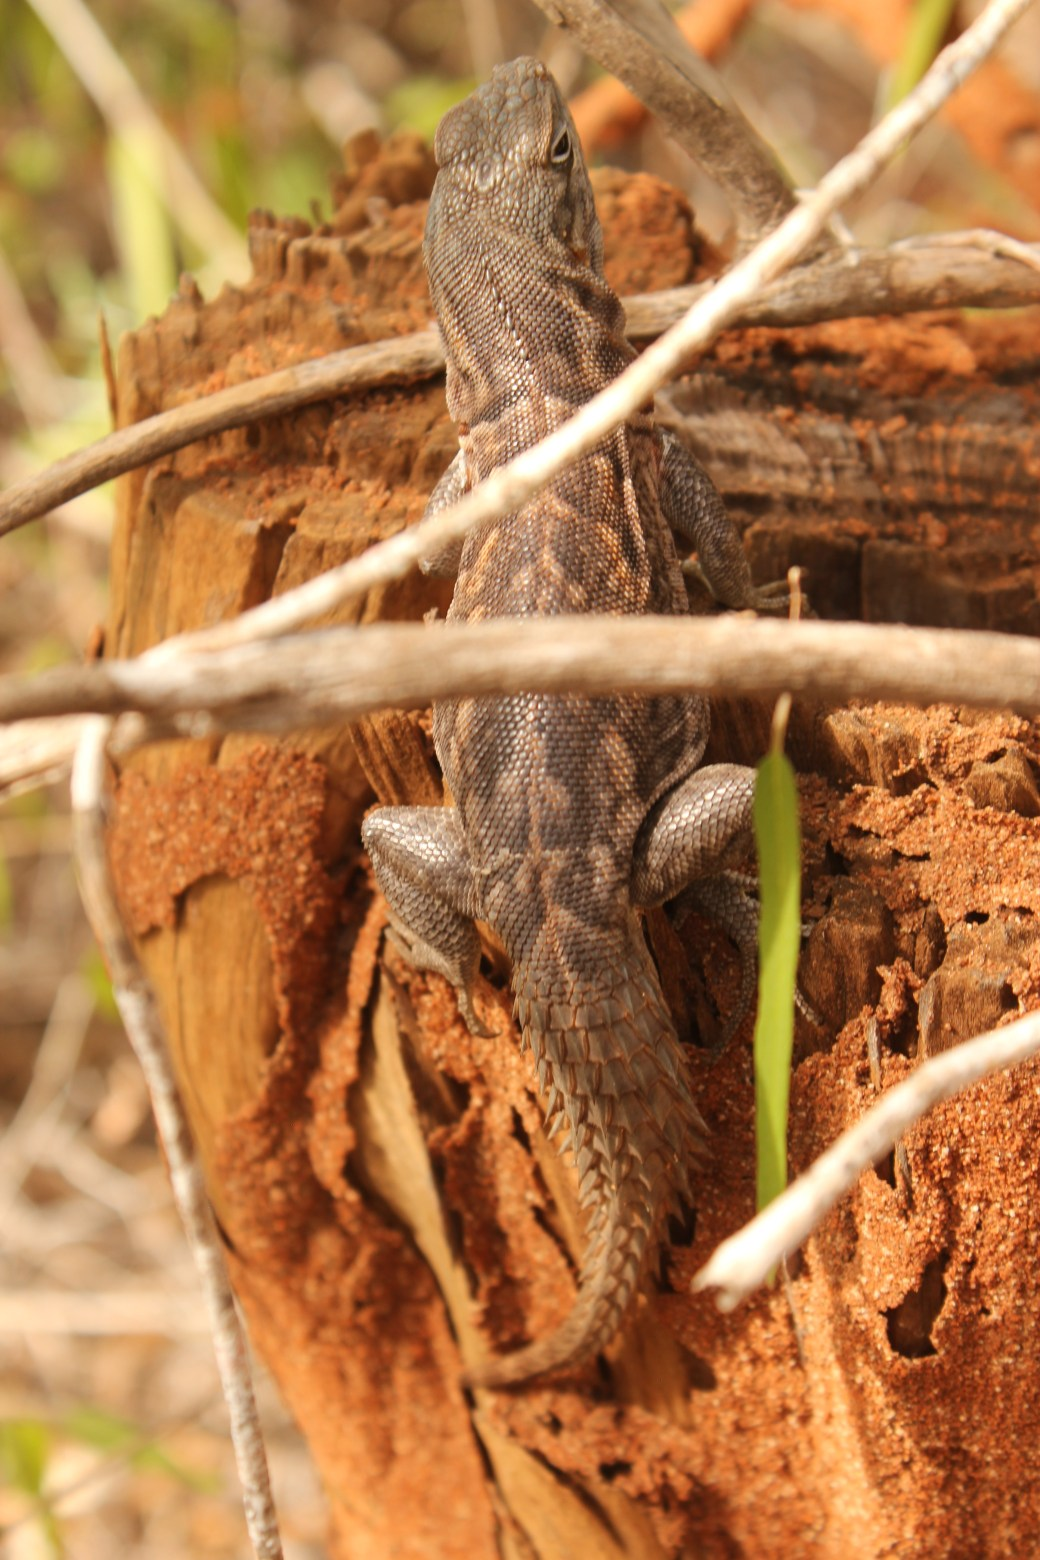 Lizard; Ifaty, Republic of Madagascar; 2013